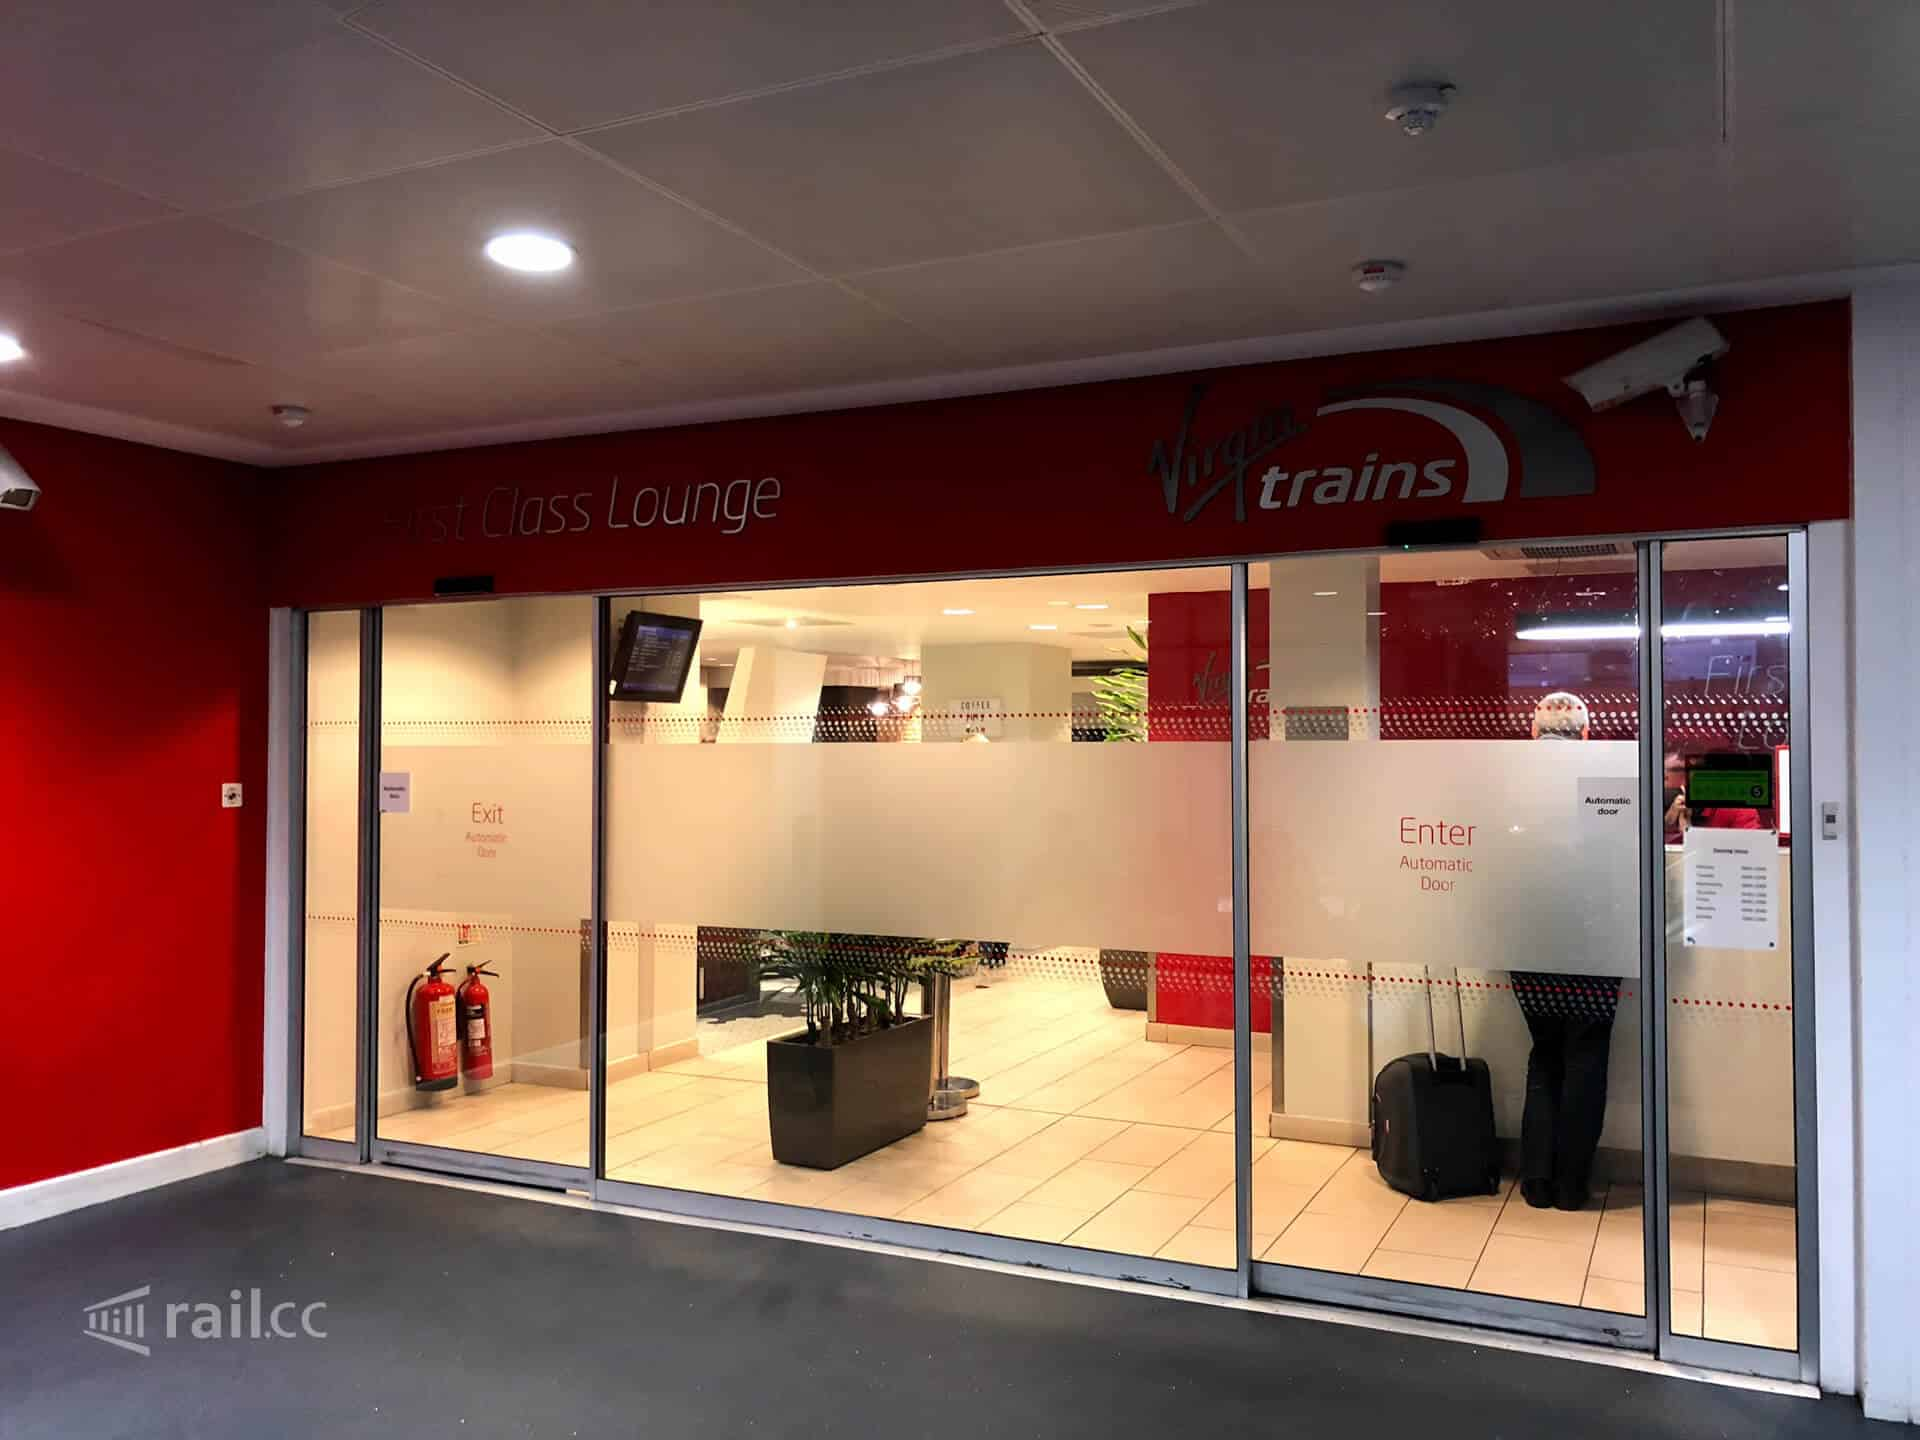 Virgin First Class Lounge in London Euston railway station